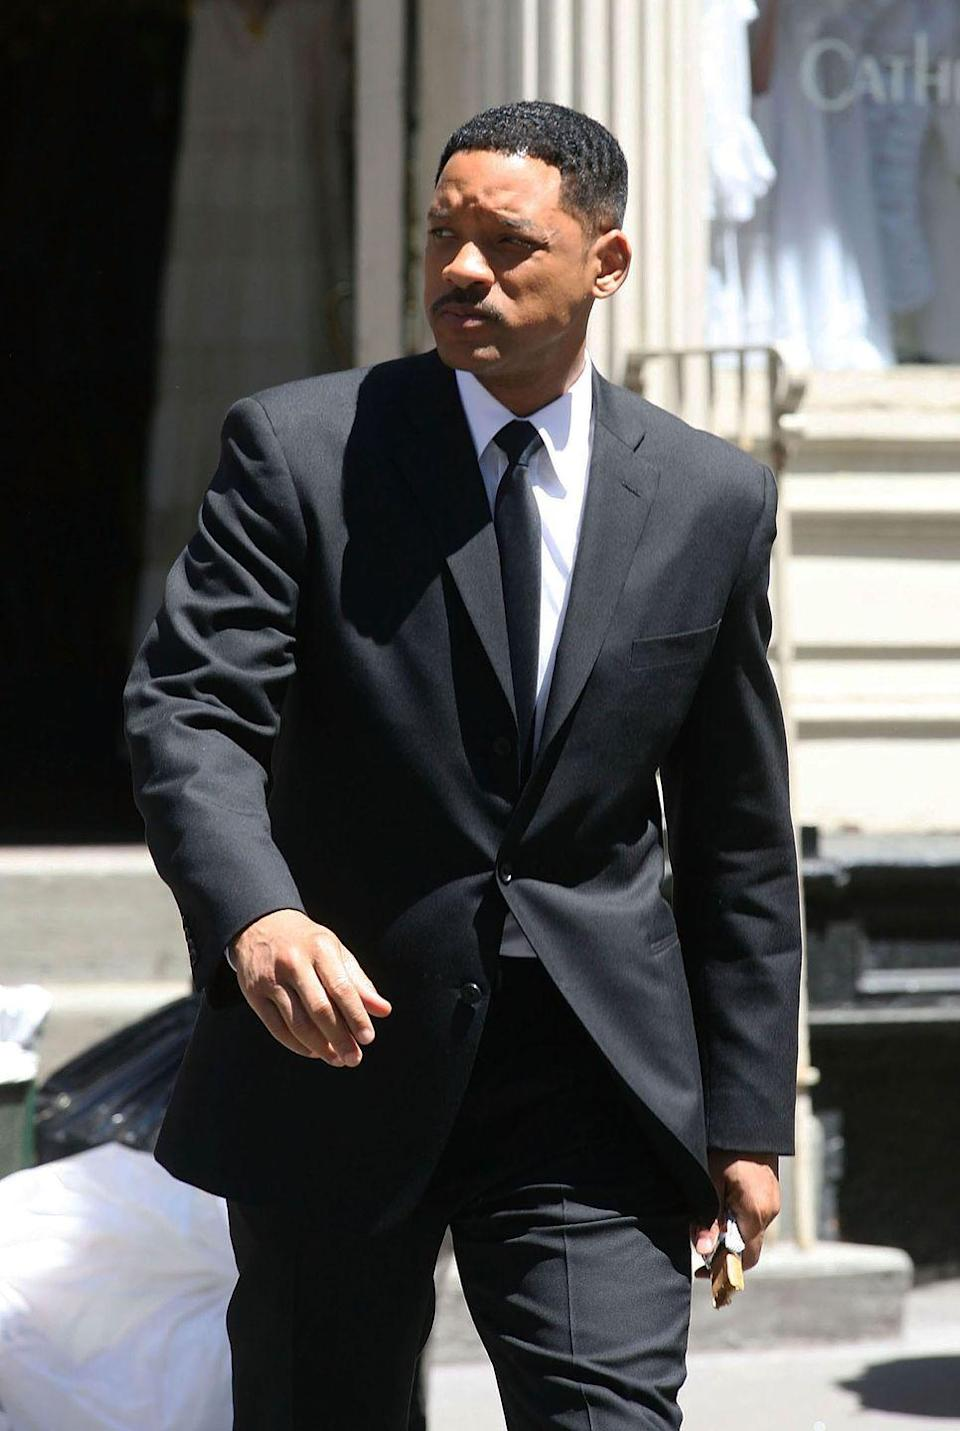 <p>Will Smith is seen on the movie set of <em>Men in Black III </em>on May 10, 2011 in New York City.</p>